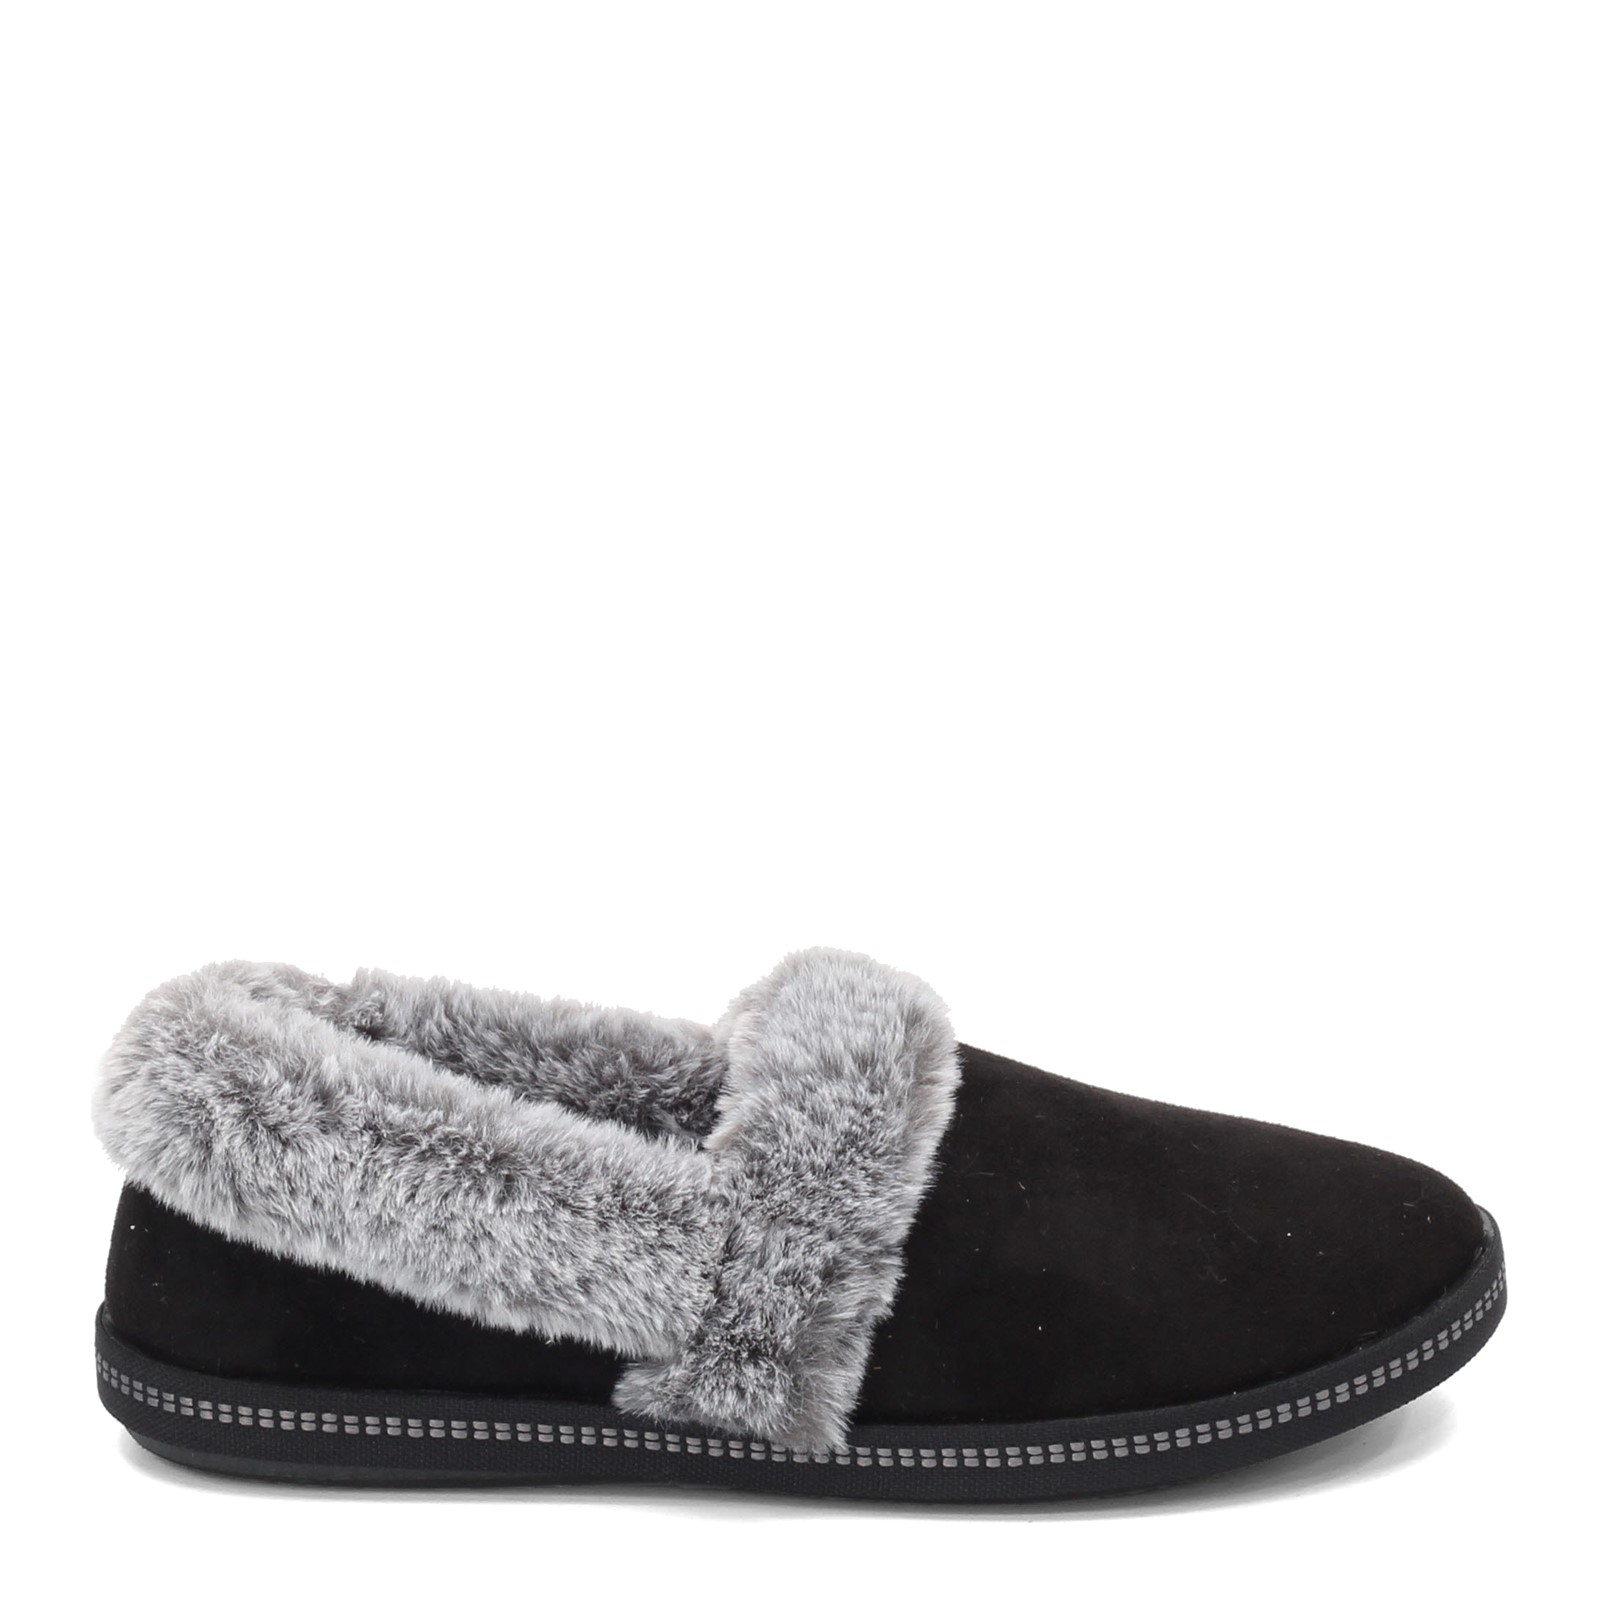 Women's Skechers Cali, Cozy Campfire Team Toasty Slipper